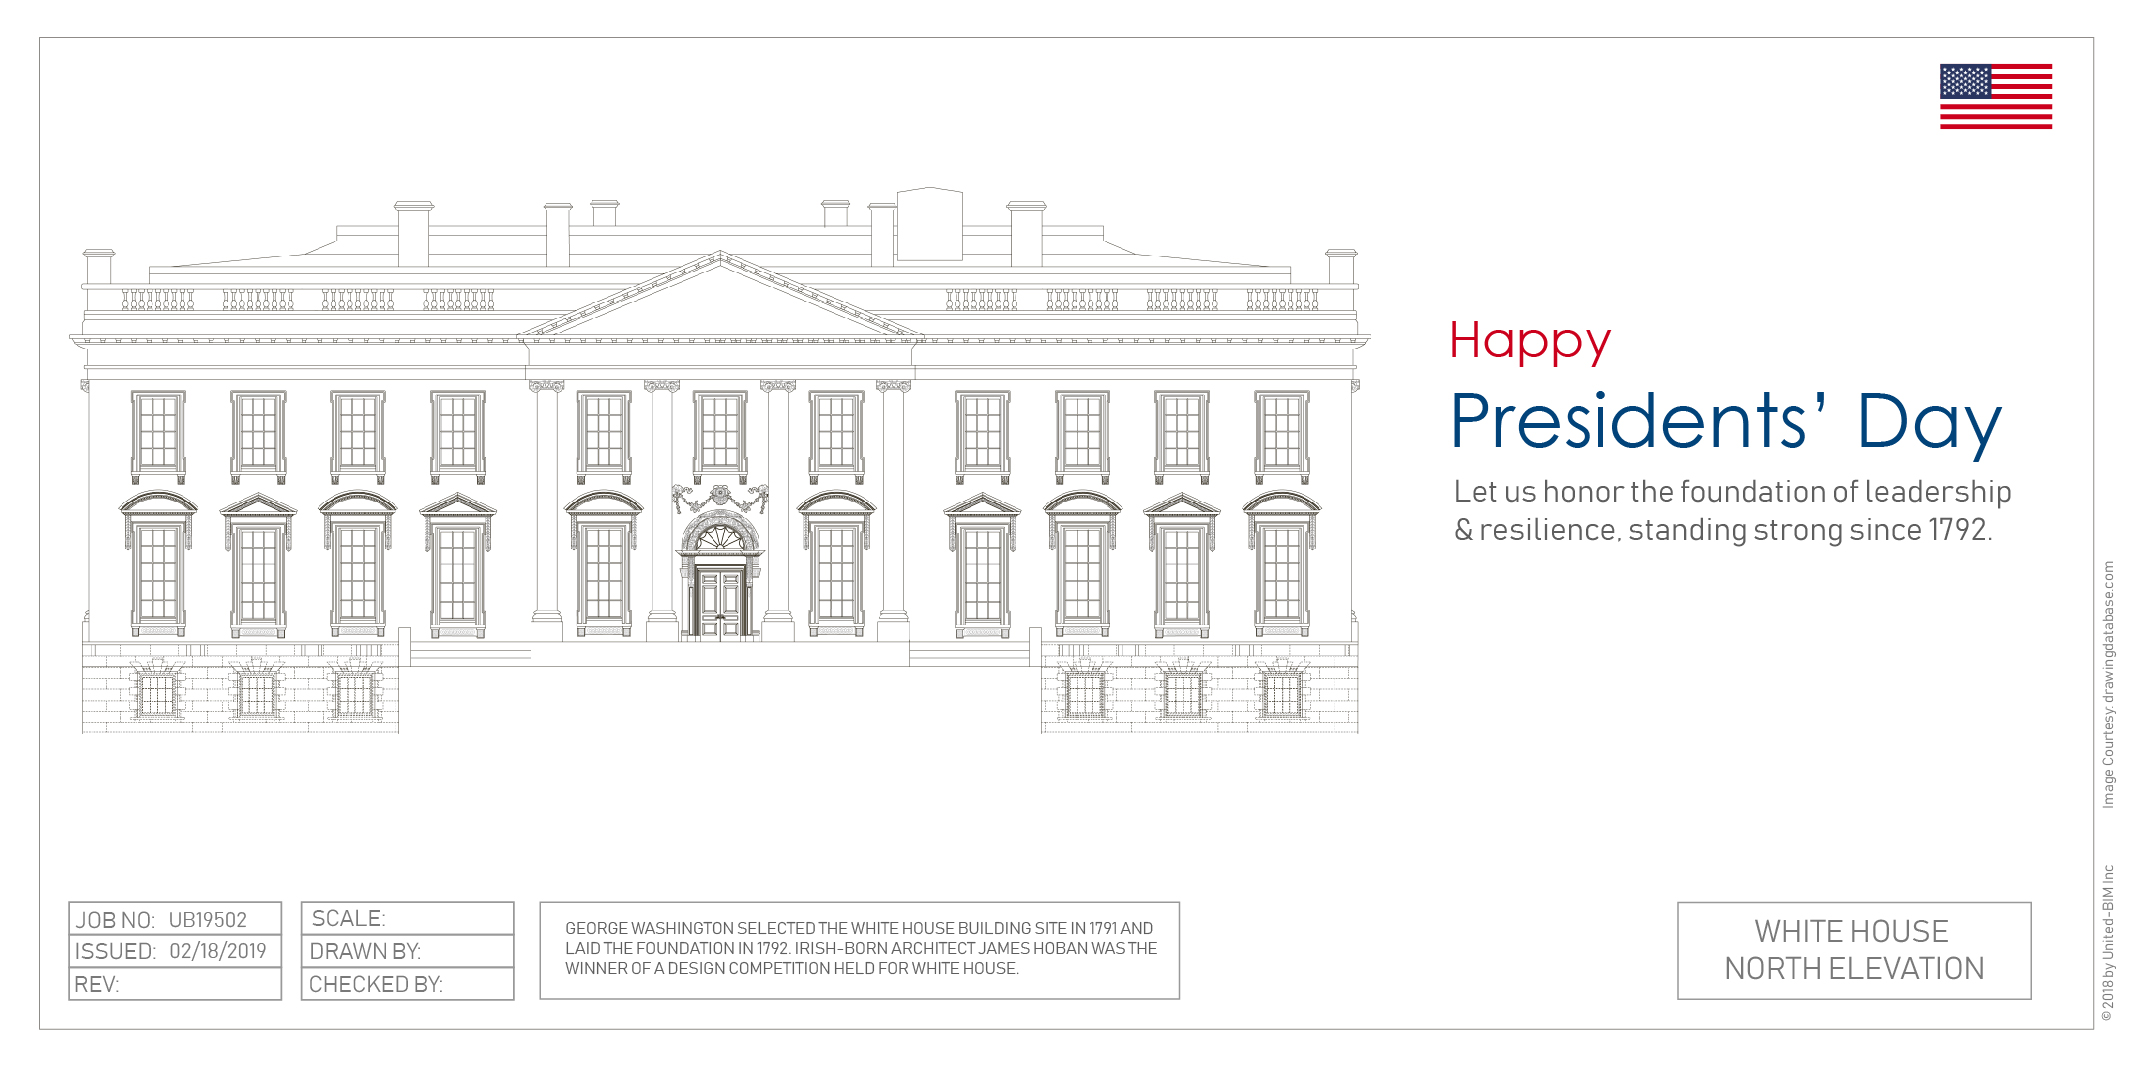 Design Drawing of North Elevation-The White House-Presidents Day wishes by United-BIM Website